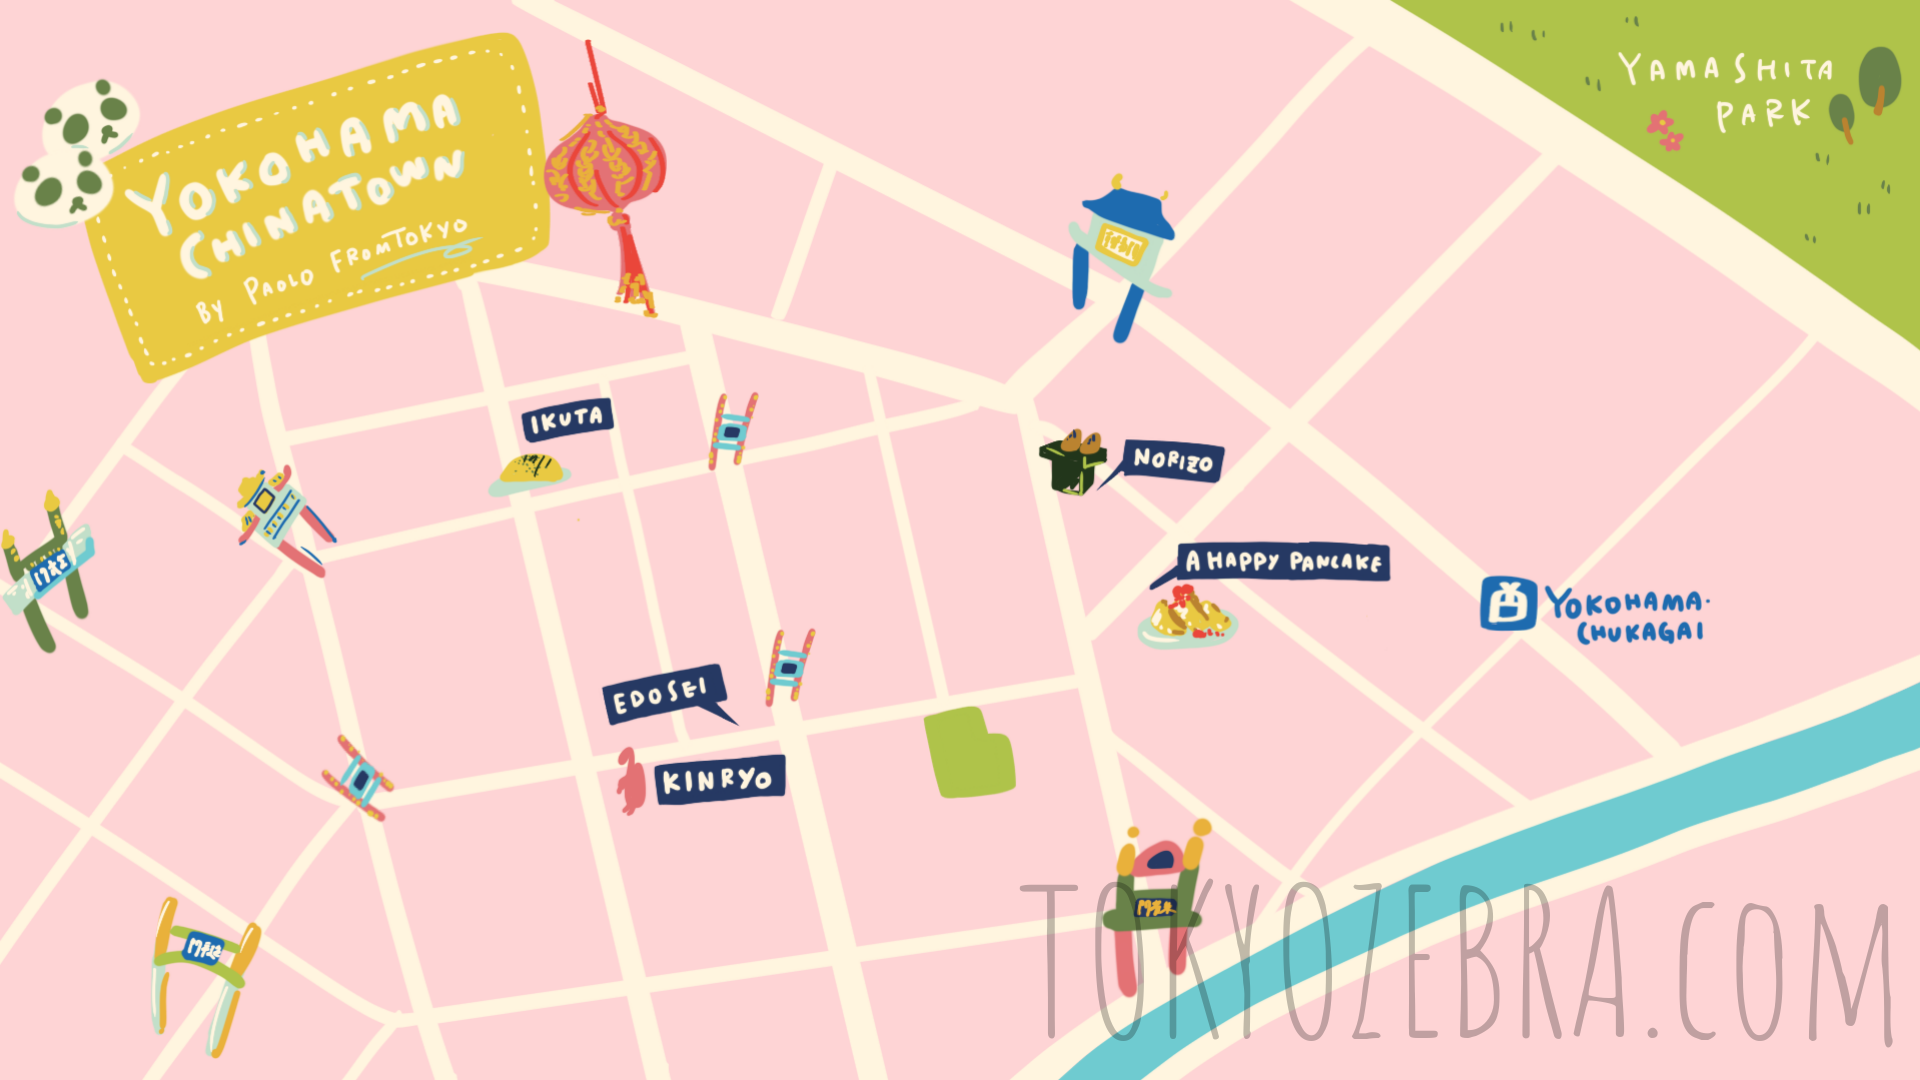 Yokohama Chinatown Map -